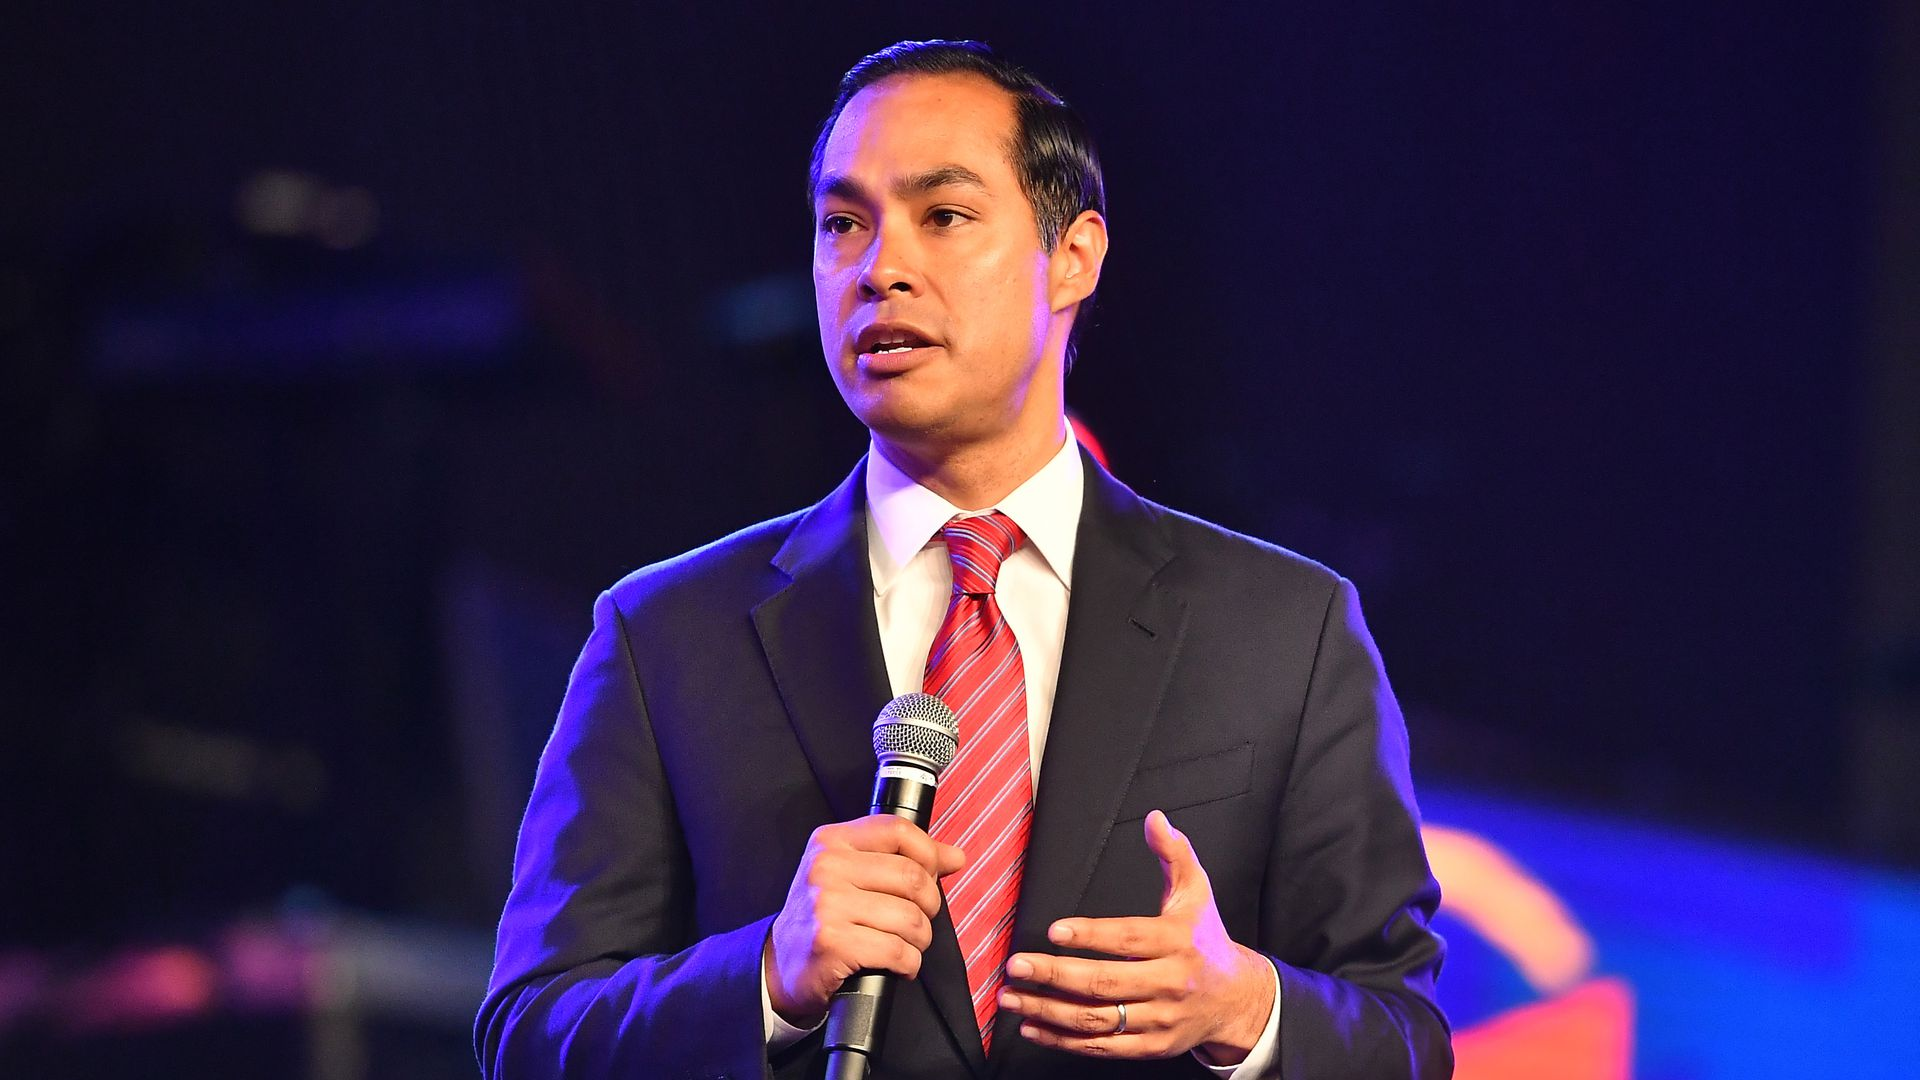 Democratic presidential candidate Julian Castro speaks on stage during Young Leaders Conference 2019